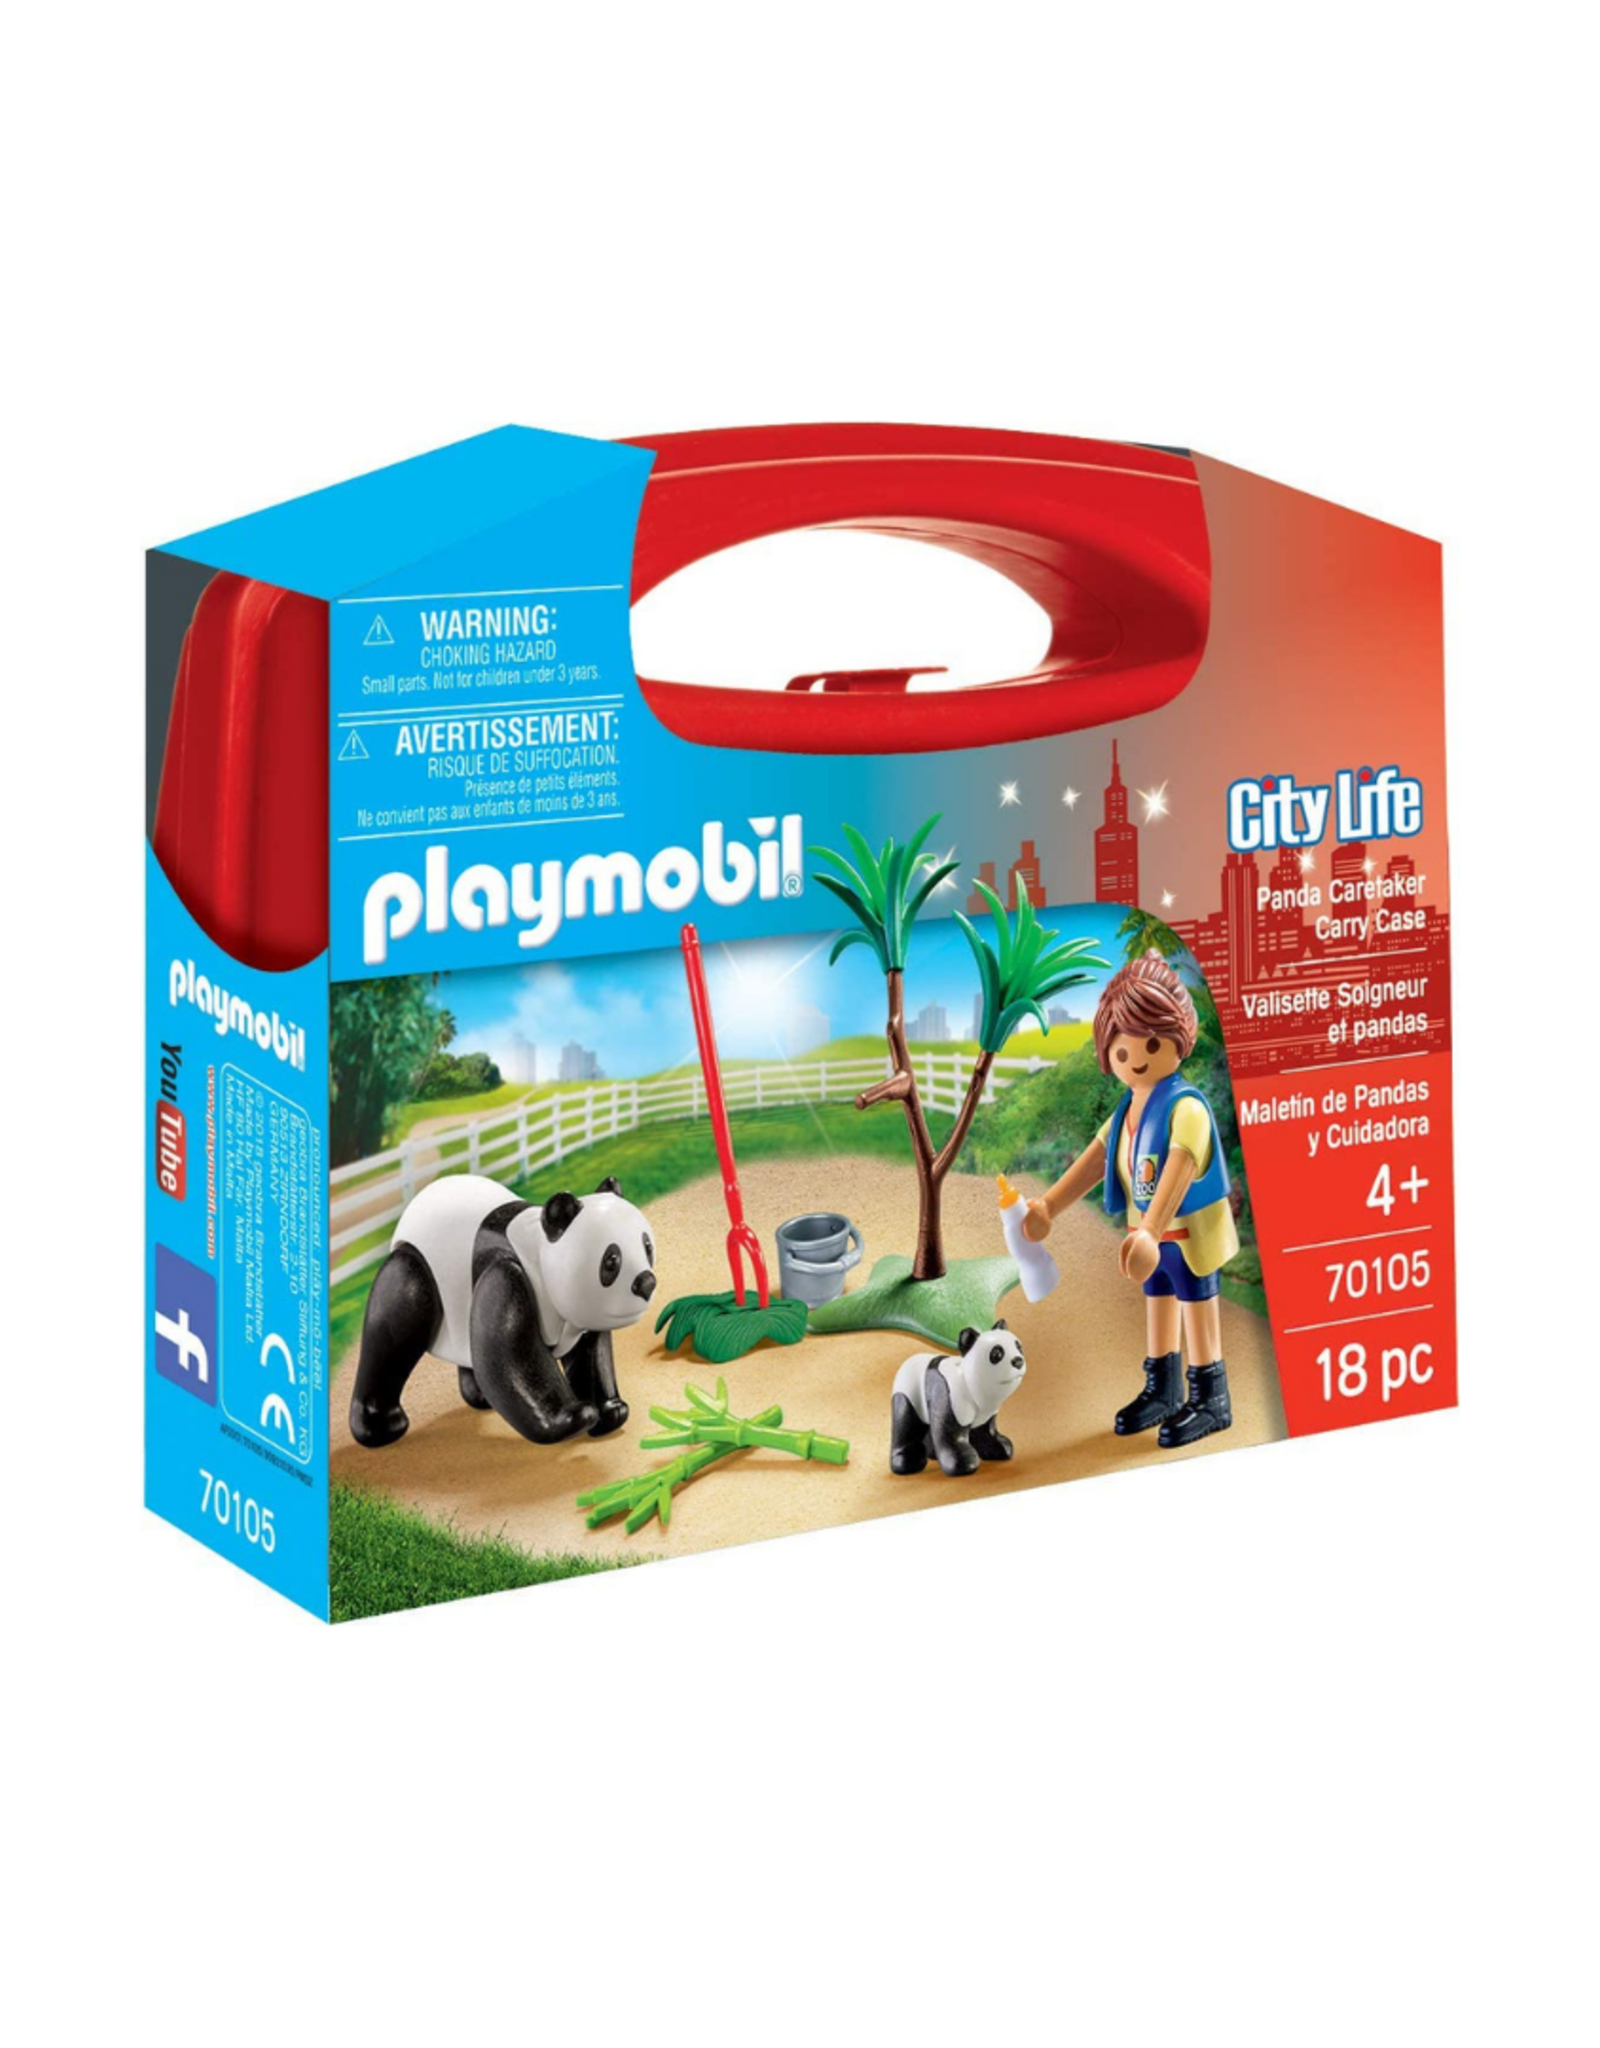 Playmobil PM - Panda Caretaker Carry Case